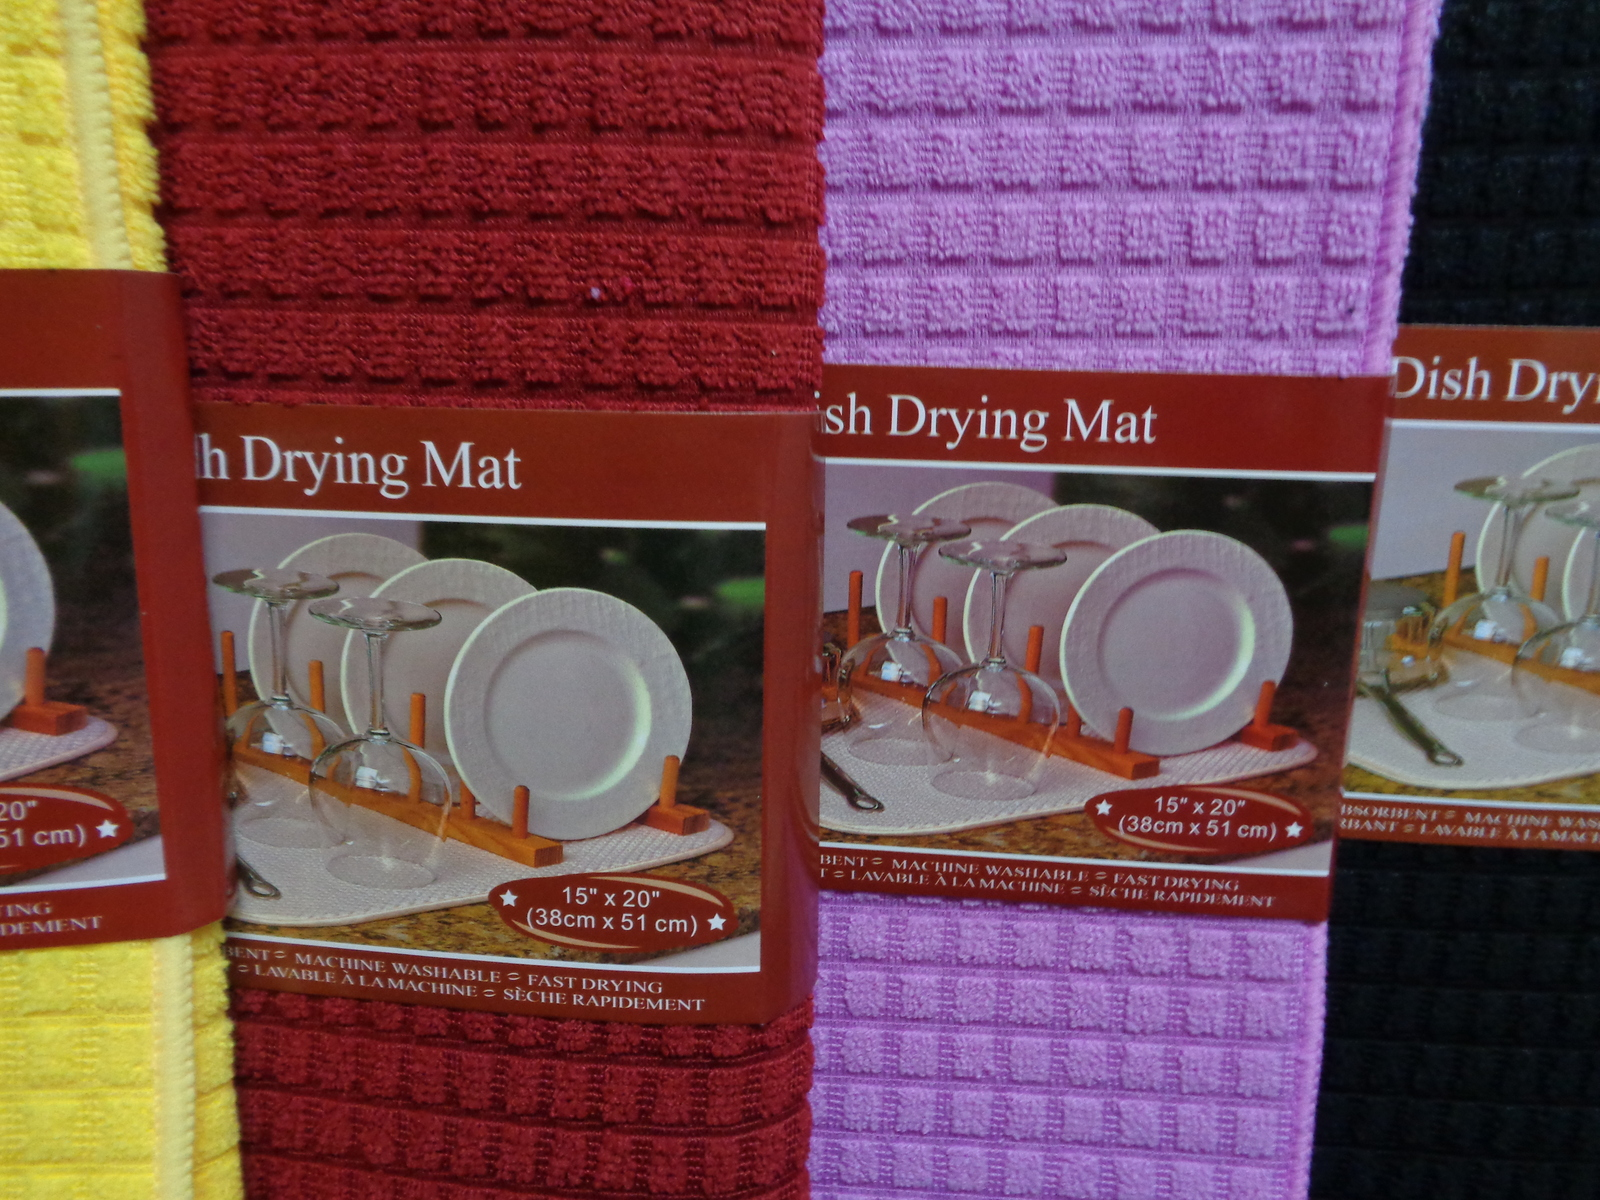 Dish Drying Mat Microfiber Absorbent Machine Washable Fast Drying RED NWT 15""